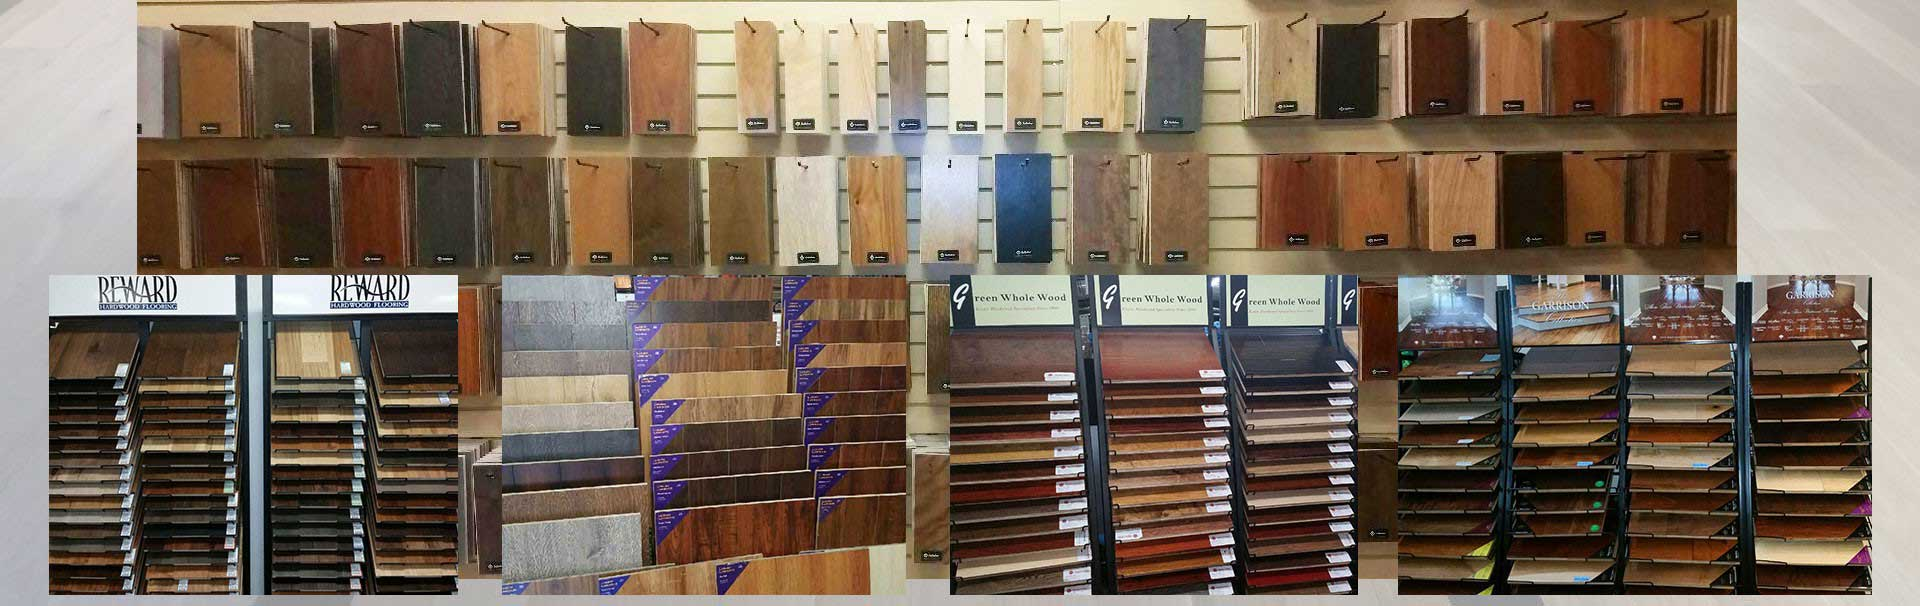 Hardwood flooring Sales Sunnyvale - Mountain View - Palo Alto - Saratoga - Menlo Park and surounding South Bay Areas